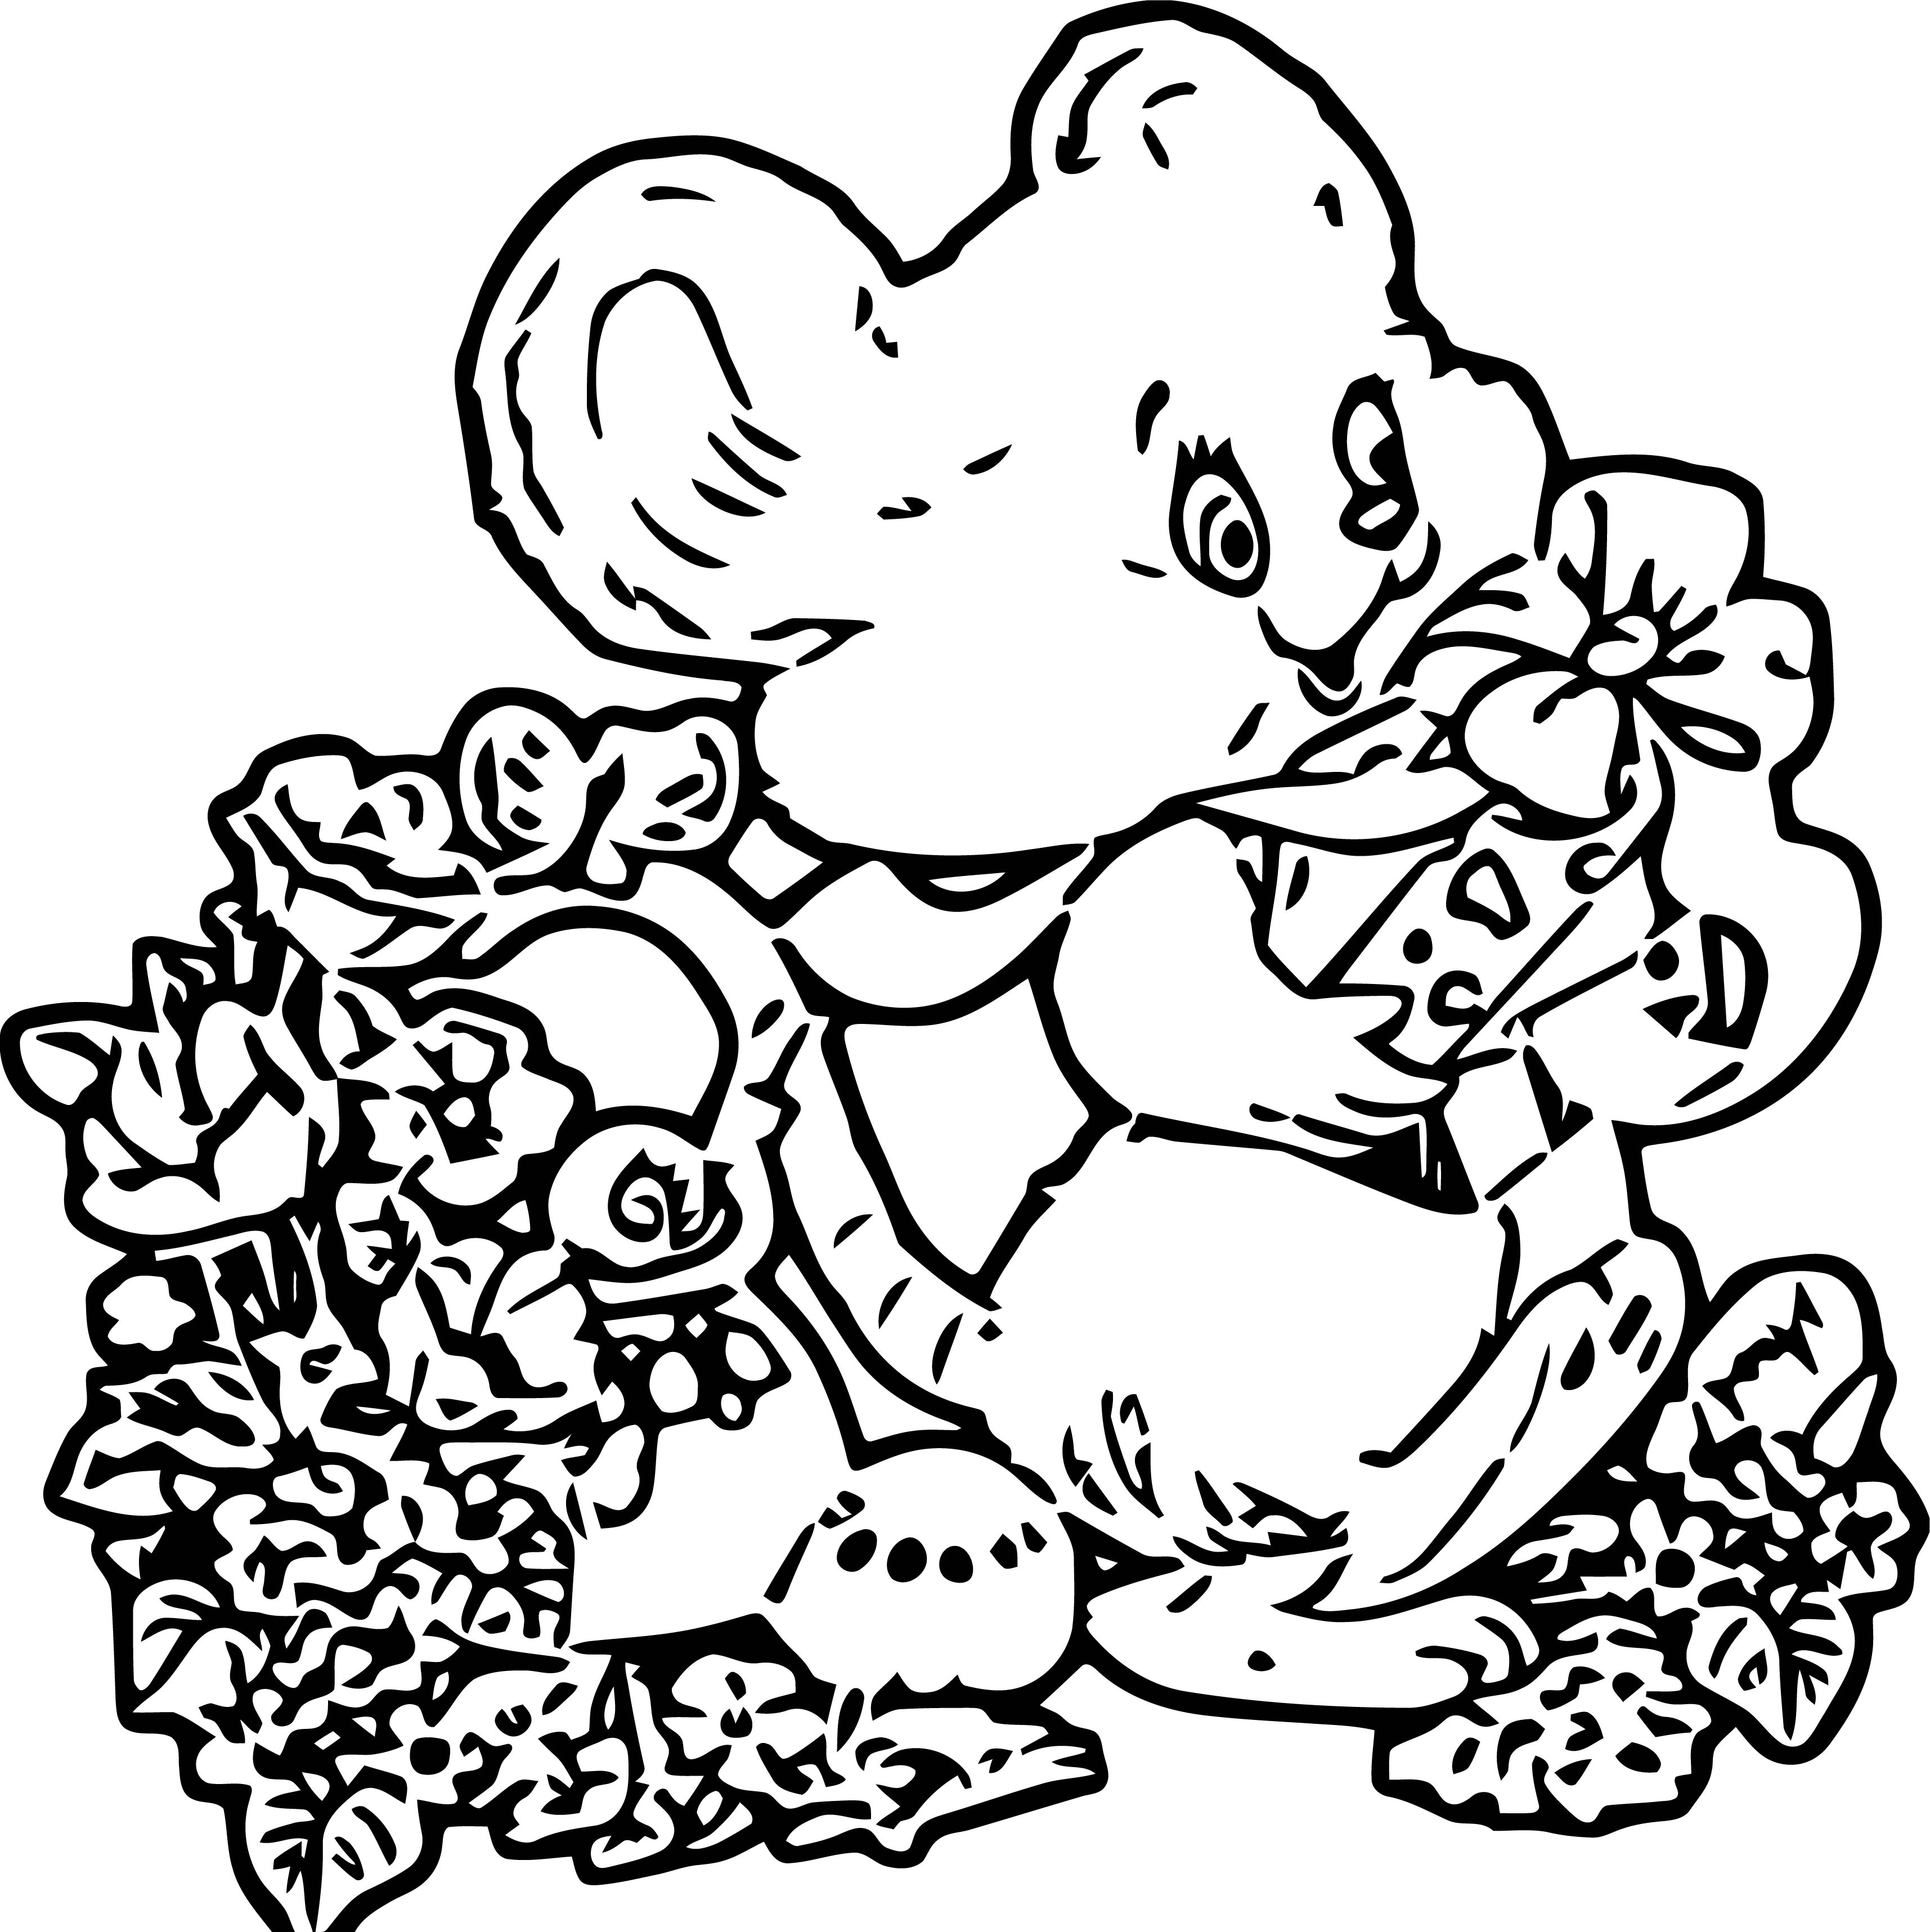 Mouse Jpeg Coloring Page 123